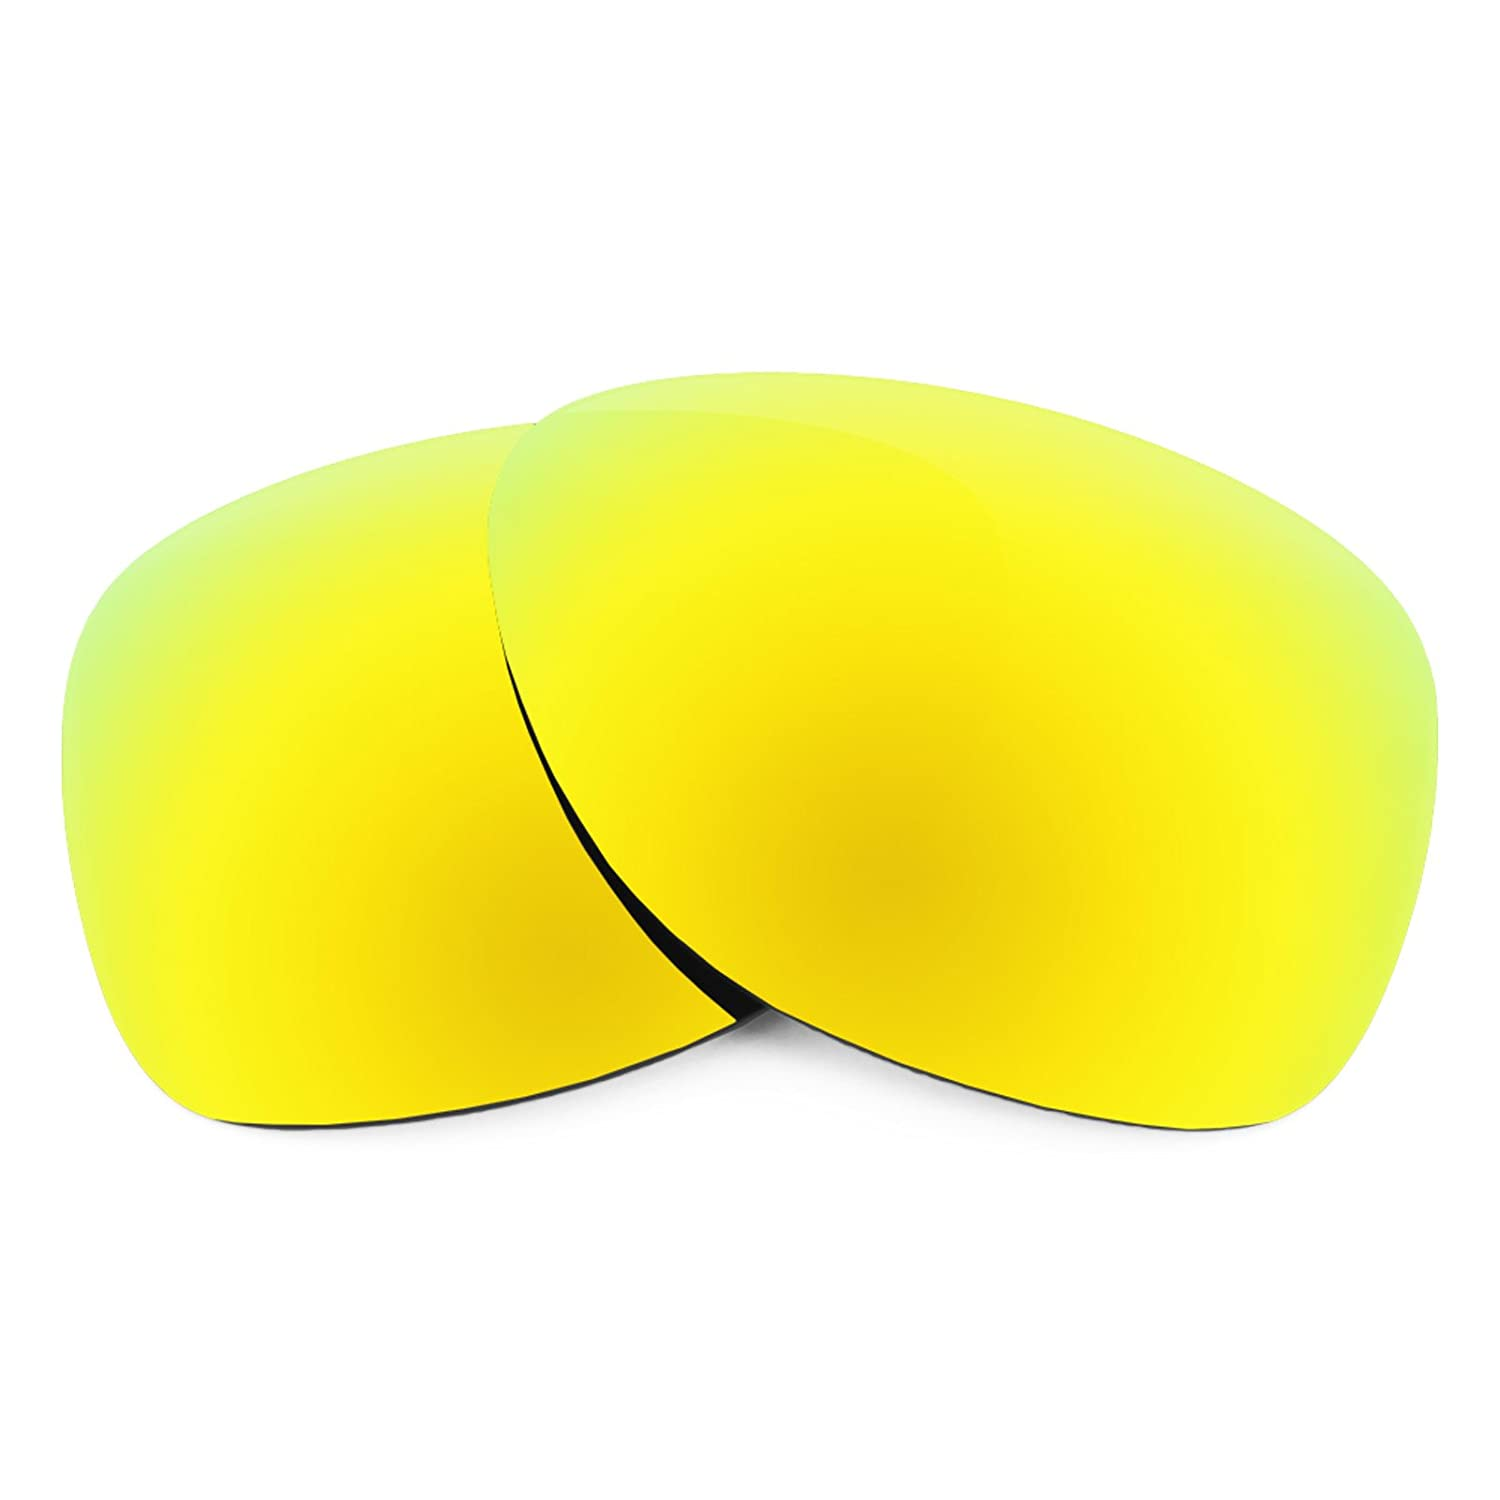 1bc93417ed8 Revant Polarized Replacement Lenses for Oakley Dispatch 2 Bolt Gold  MirrorShield®  Amazon.ca  Sports   Outdoors